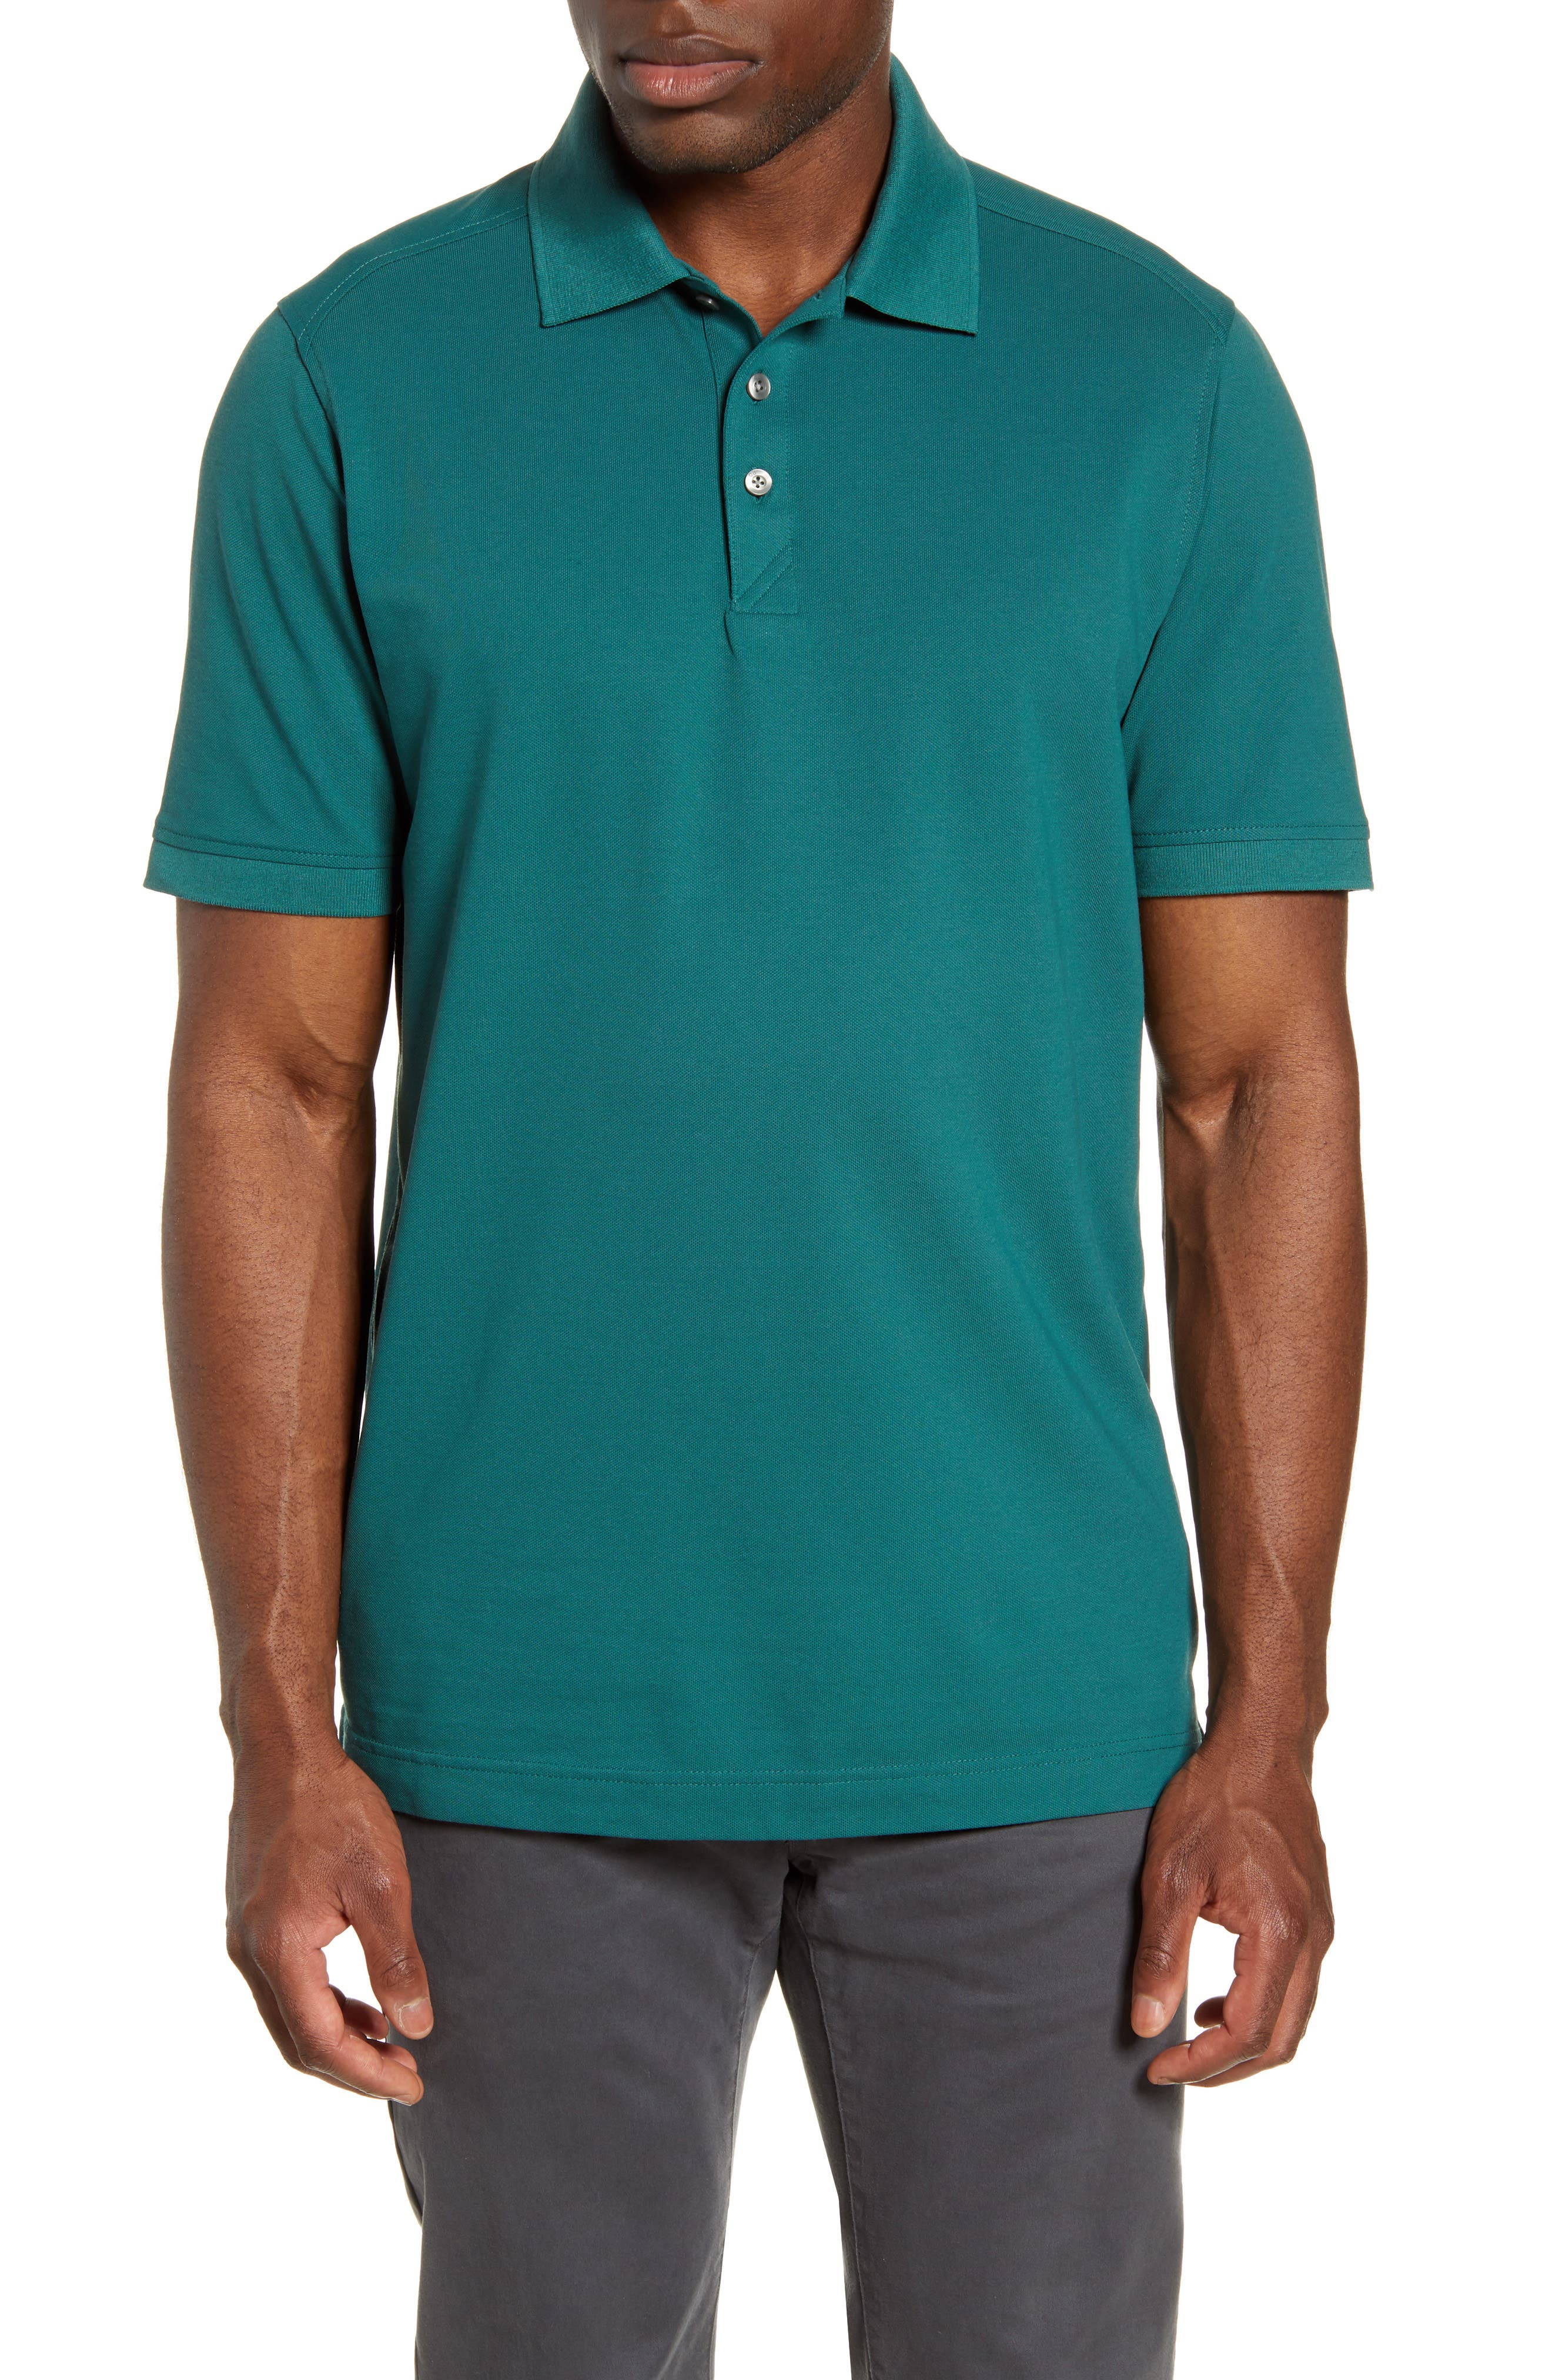 A performance-ready polo made of stretchy DryTec pique fabric keeps you cool and dry while helping to protect the skin from harmful UV rays. Style Name: Cutter & Buck Advantage Golf Polo. Style Number: 5304334. Available in stores.